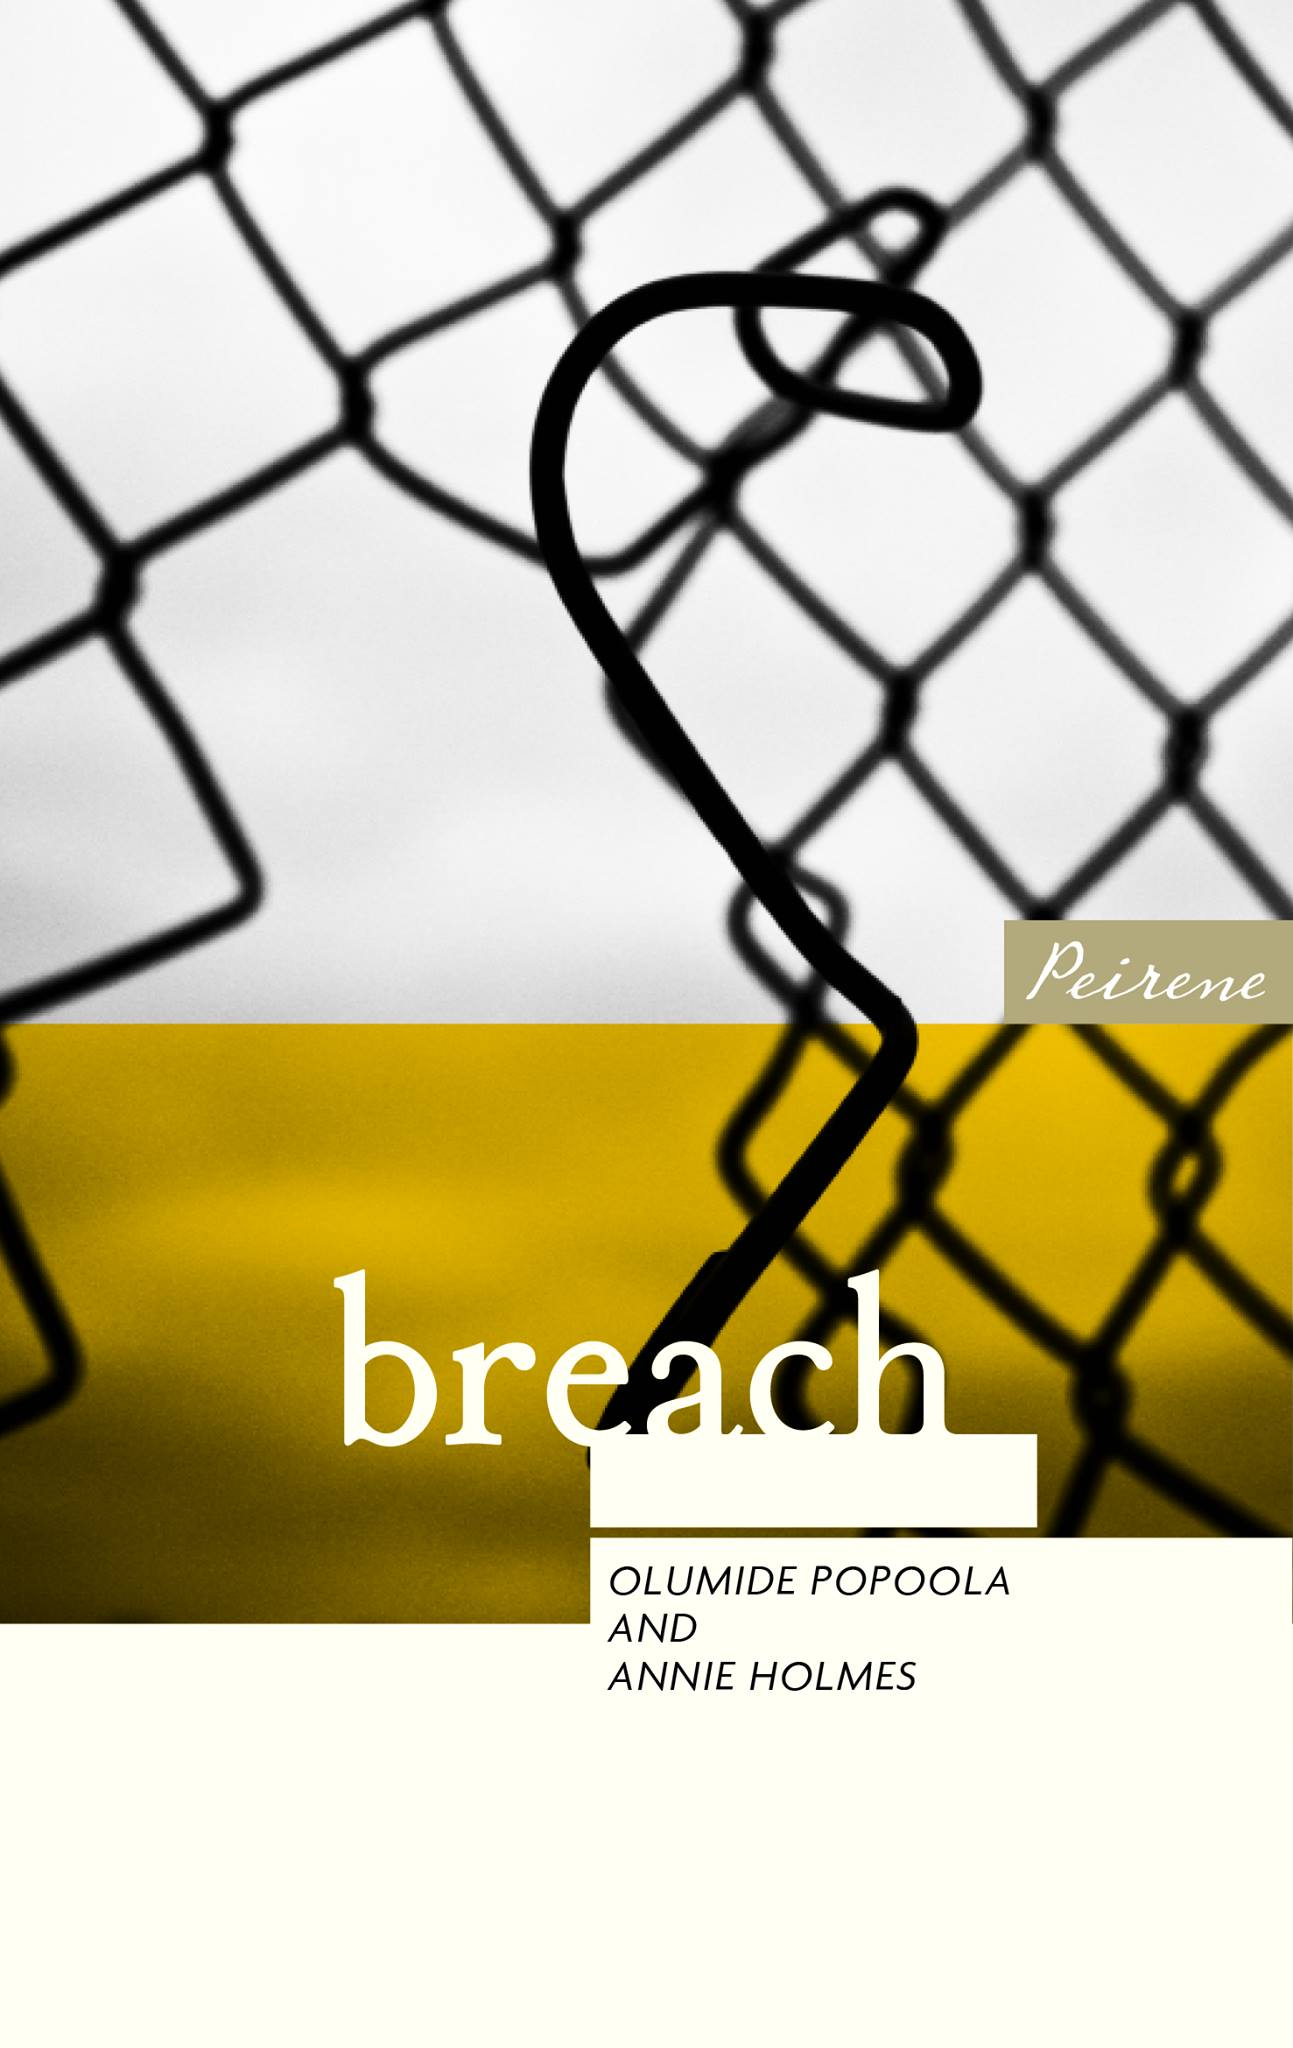 Breach by Annie Holmes and Olumide Popoola